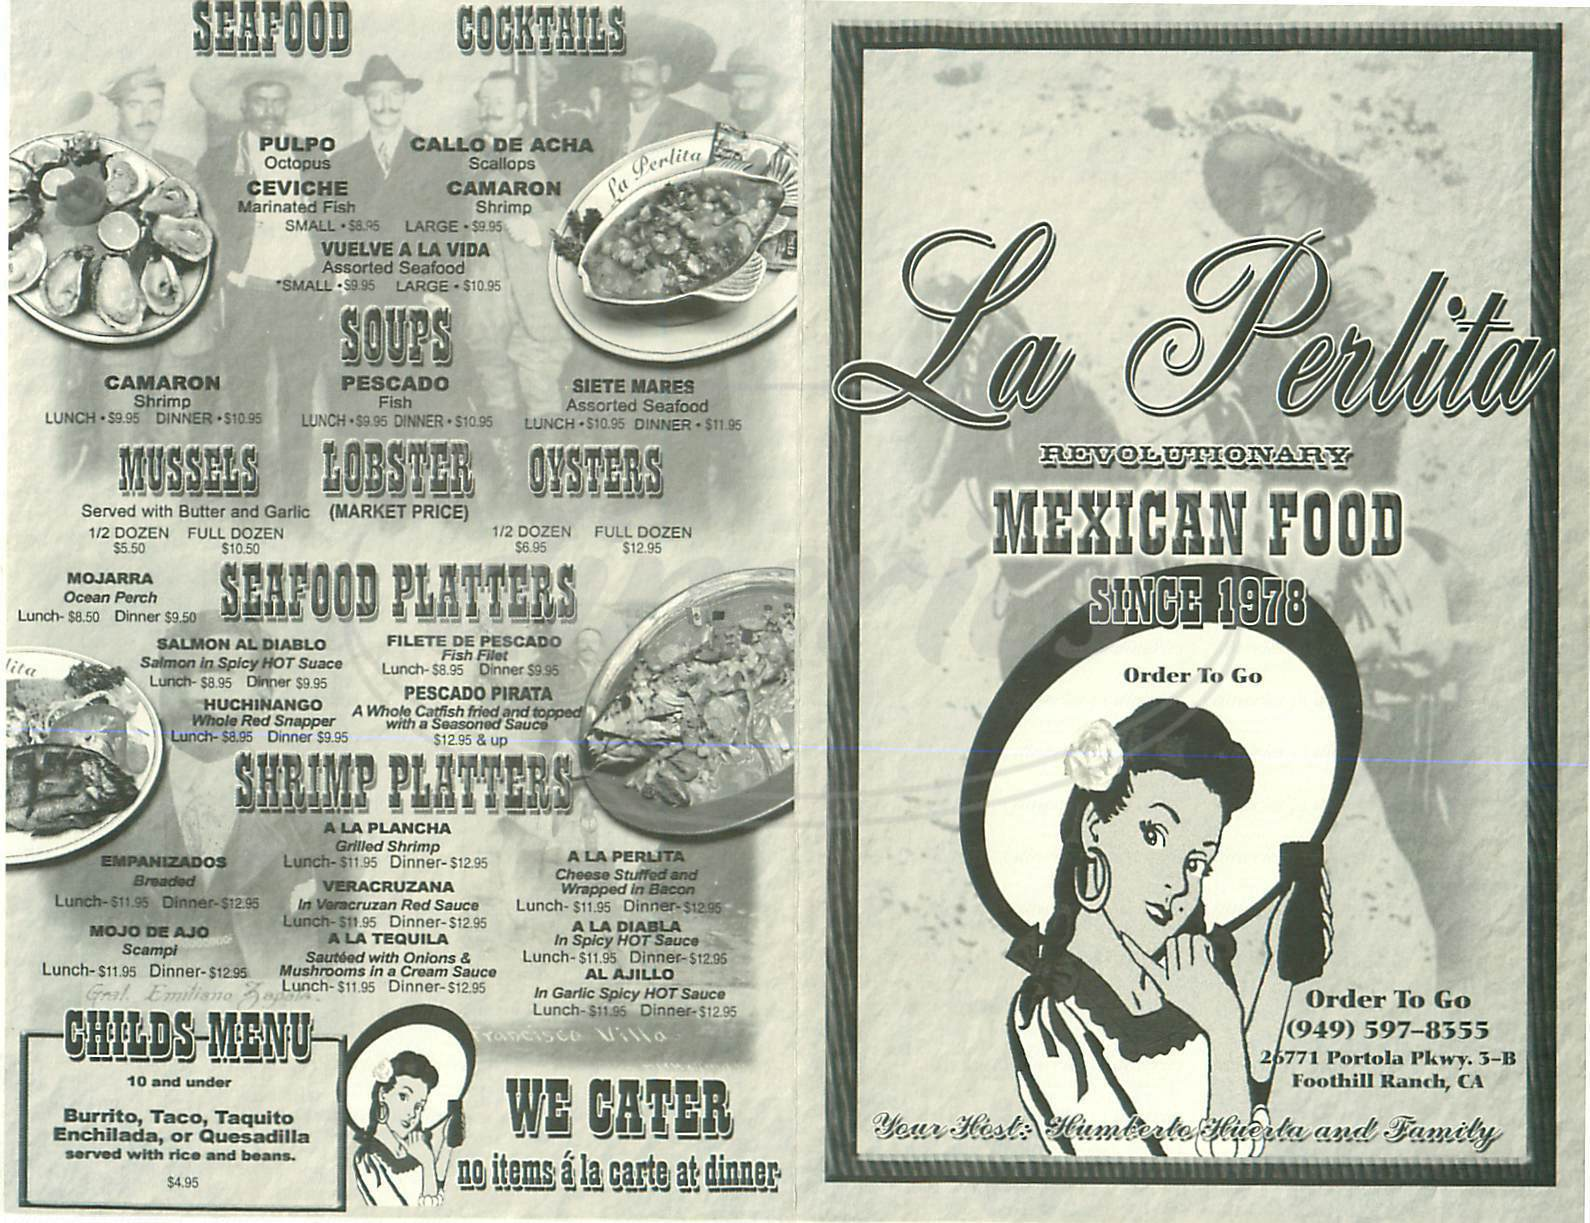 menu for La Perlita